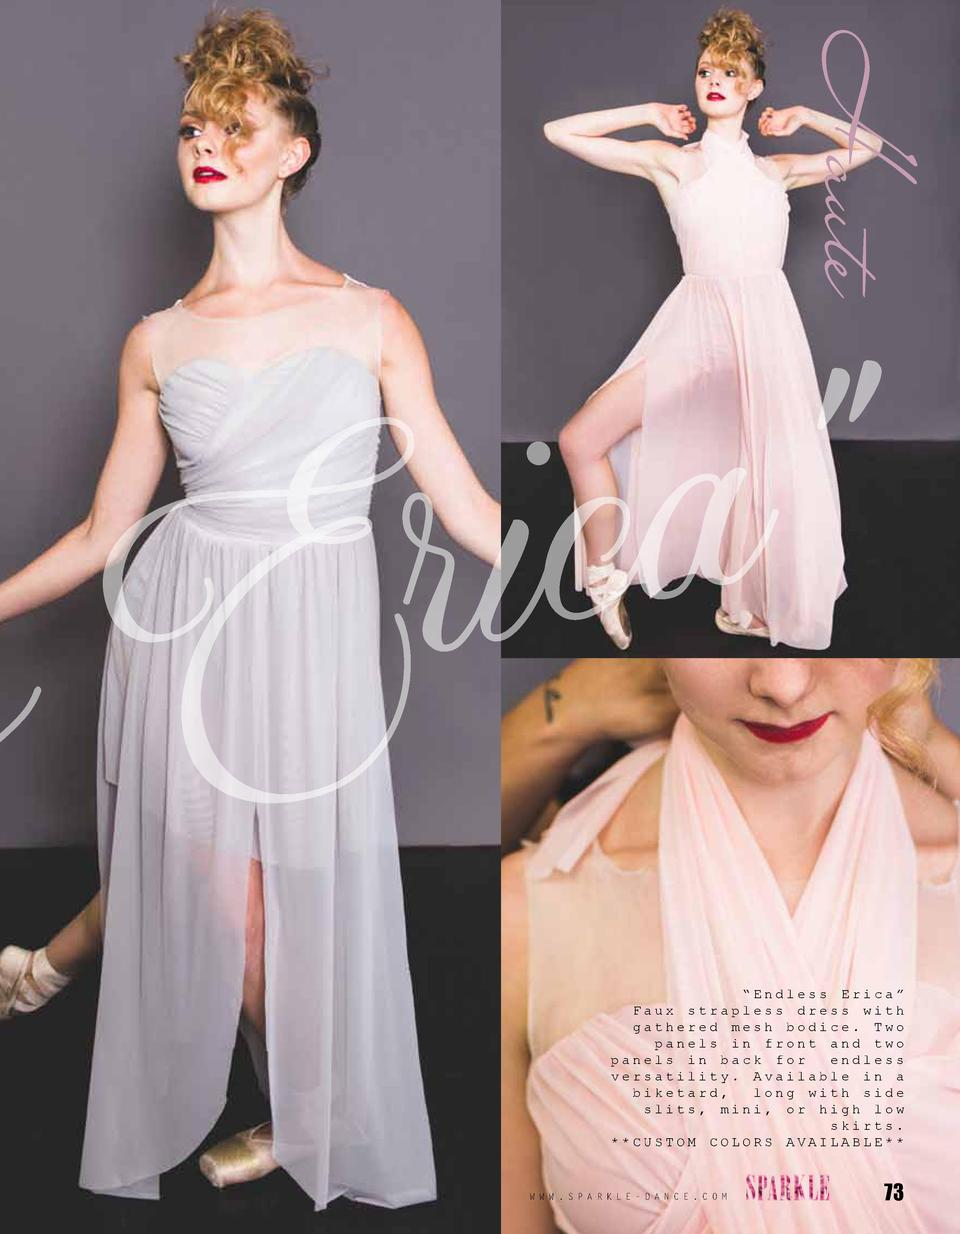 Haute      a ic r E s    Endless Erica    Faux strapless dress with gathered mesh bodice. Two panels in front and two pane...